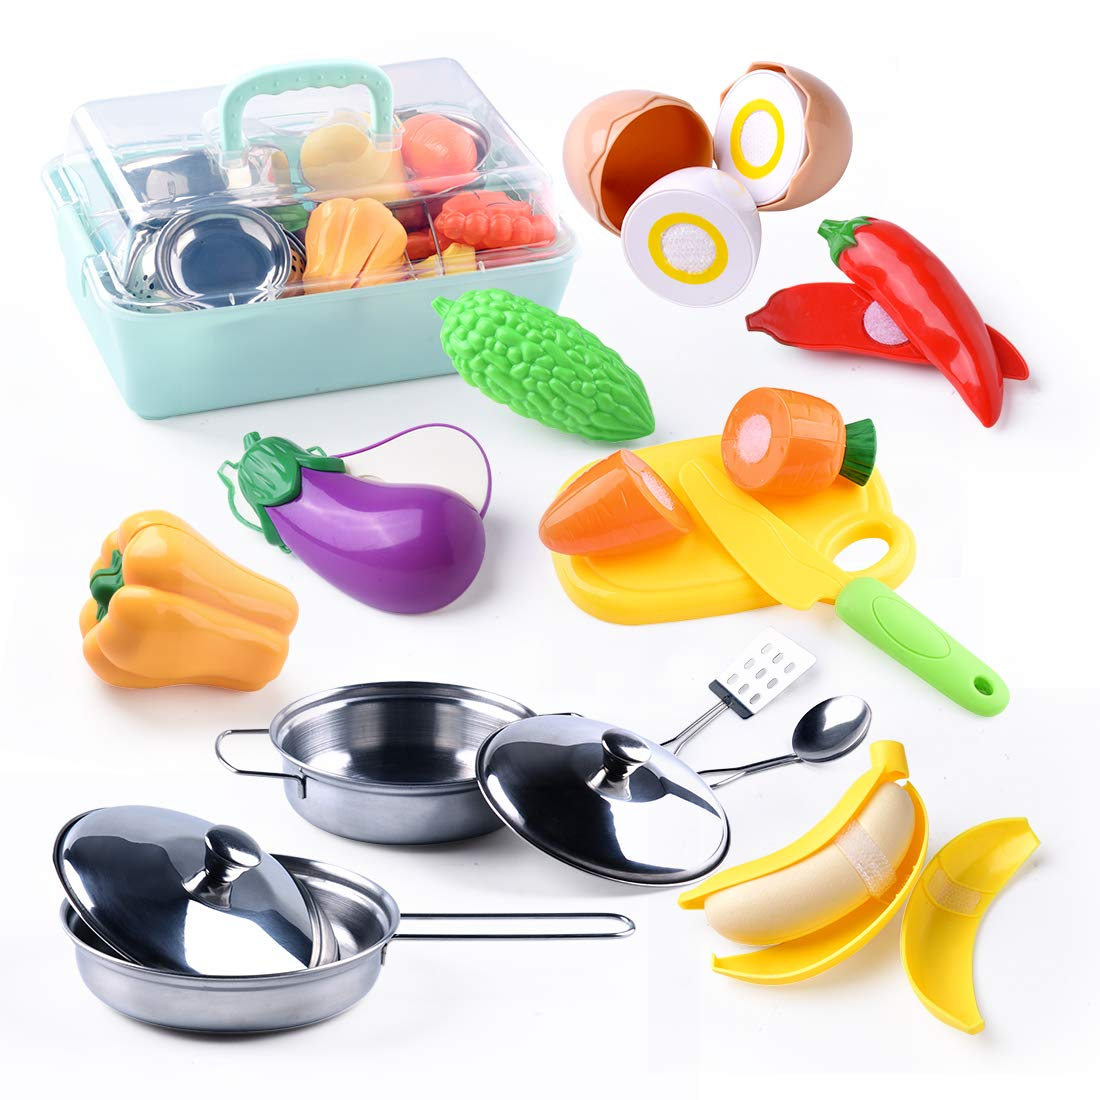 YIYUE Pretend Play Kitchen Toys, Stainless-Steel Toy Pots and Pans, Mini Utensils with Plastic Play Cut Vegetables with Safe Knife and Chopping Board